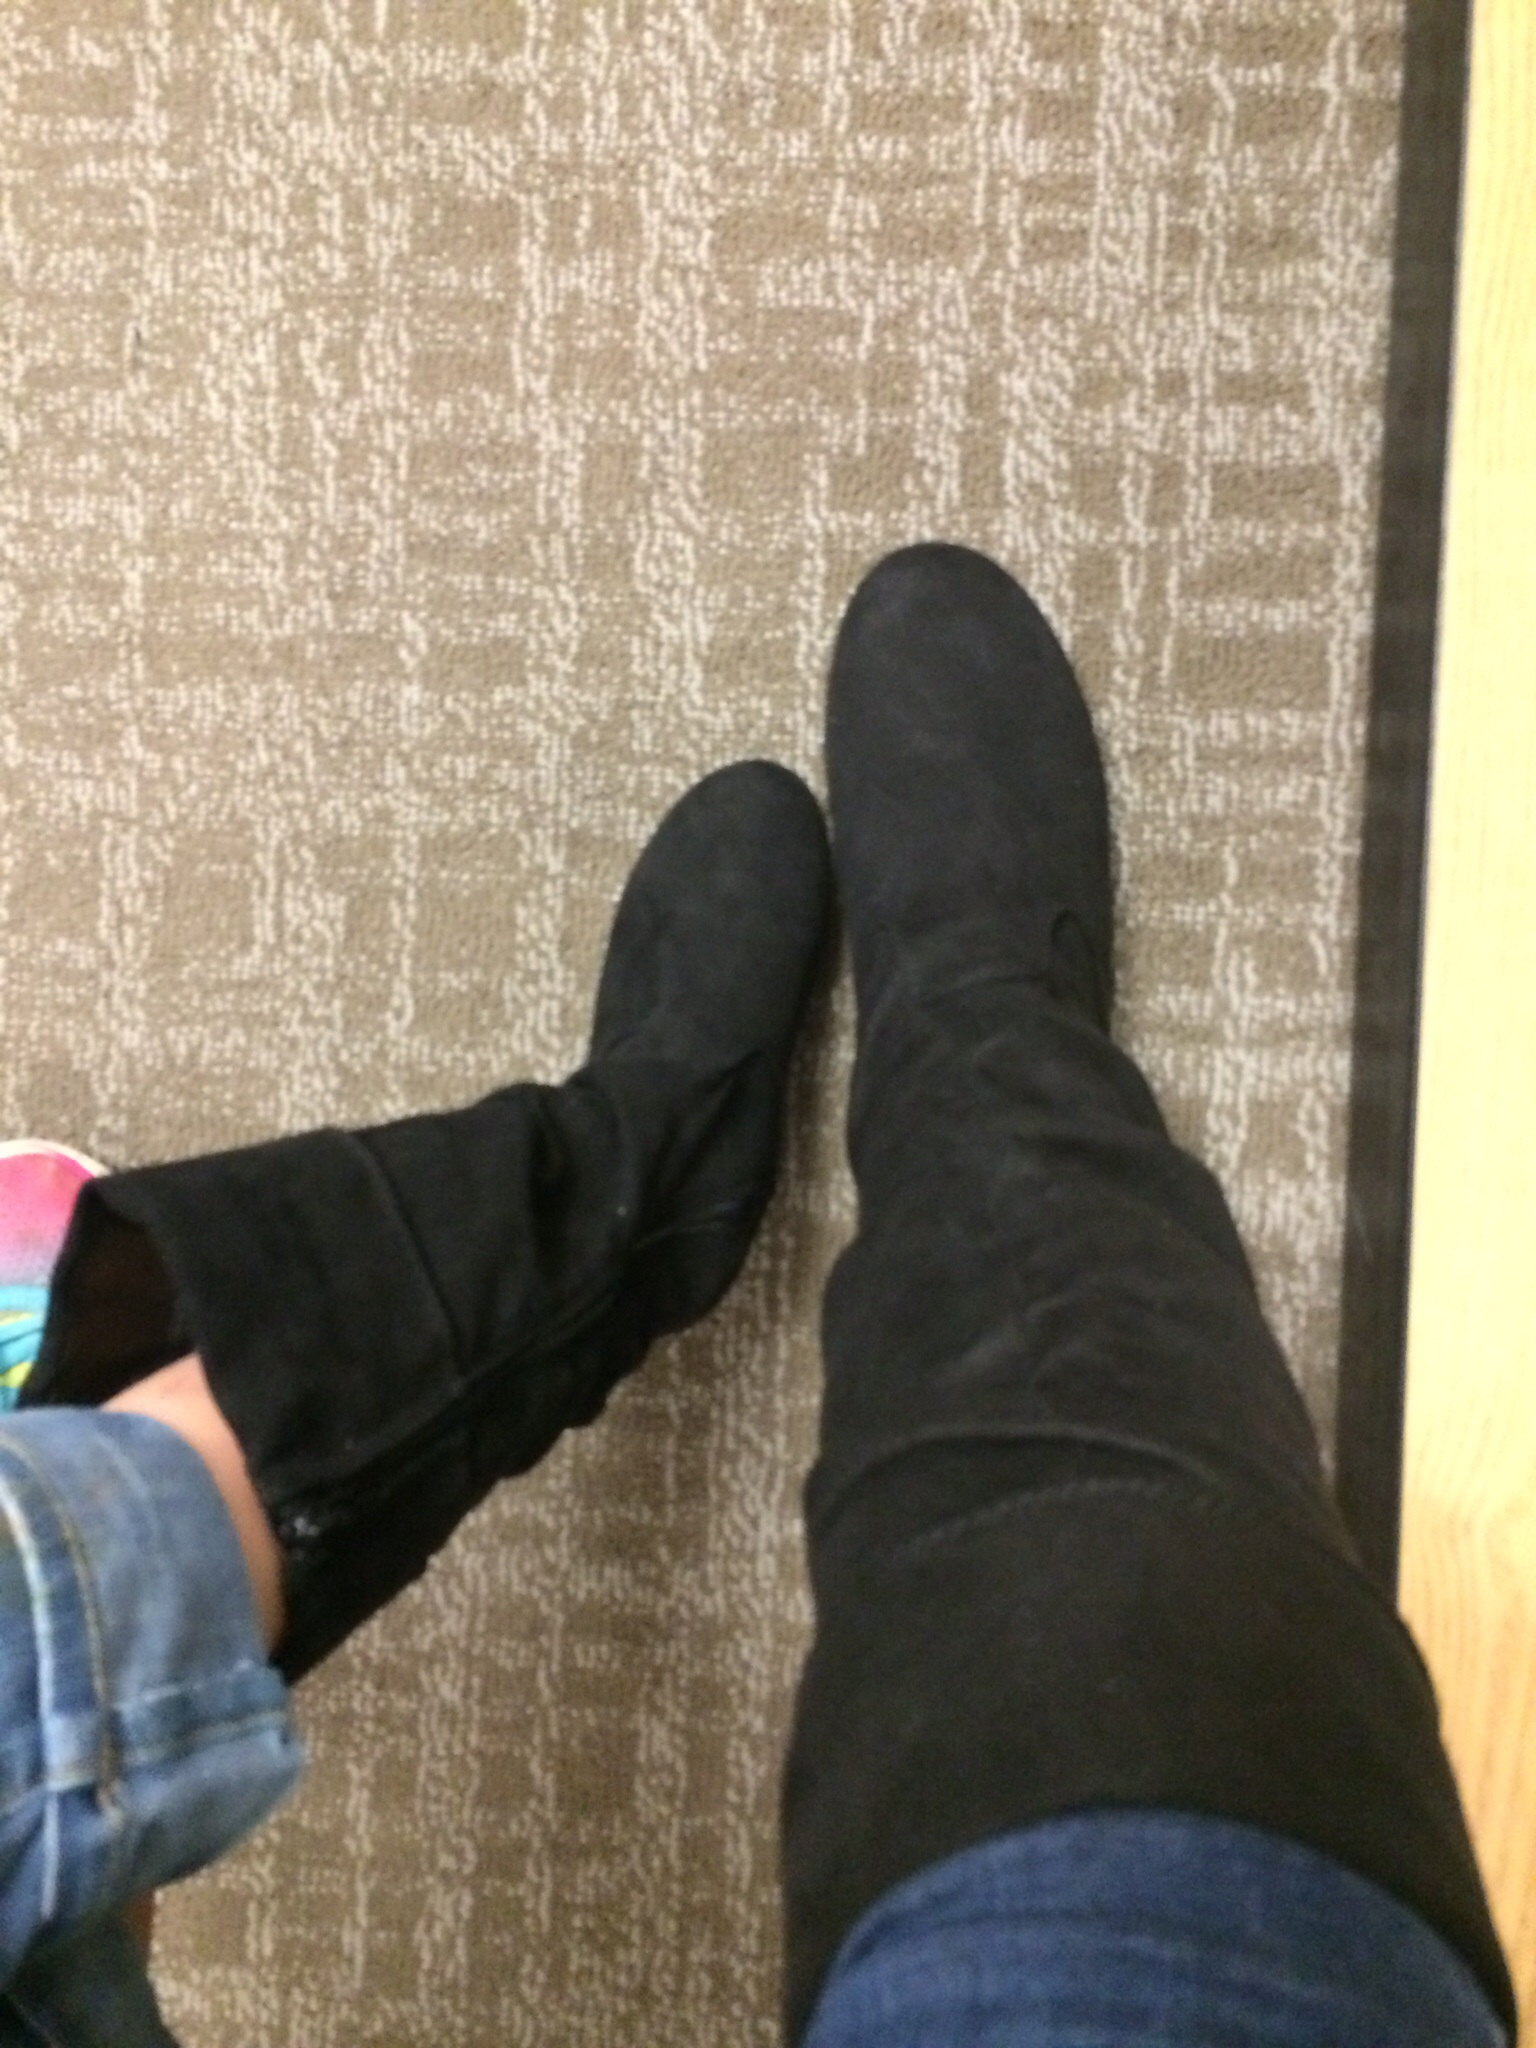 Boot twins